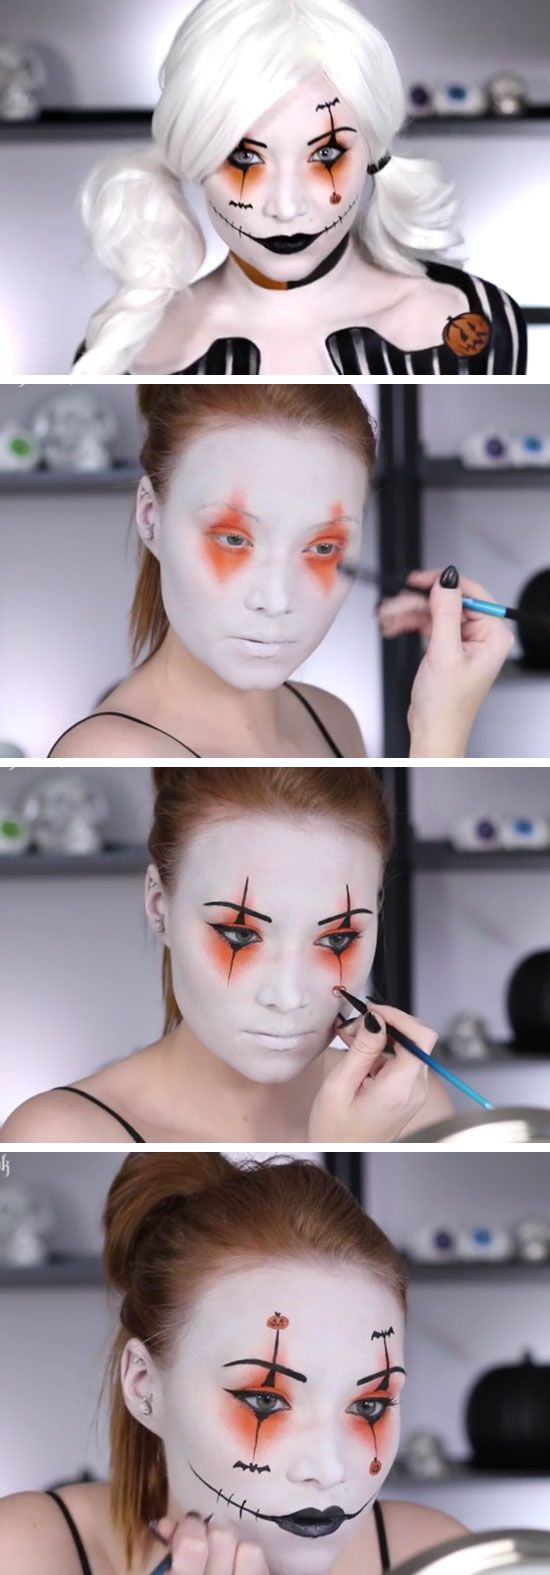 Halloween Makeup Ideas Easy Makeup Looks.Halloween Makeup Tutorials Costume Ideas The 36th Avenue